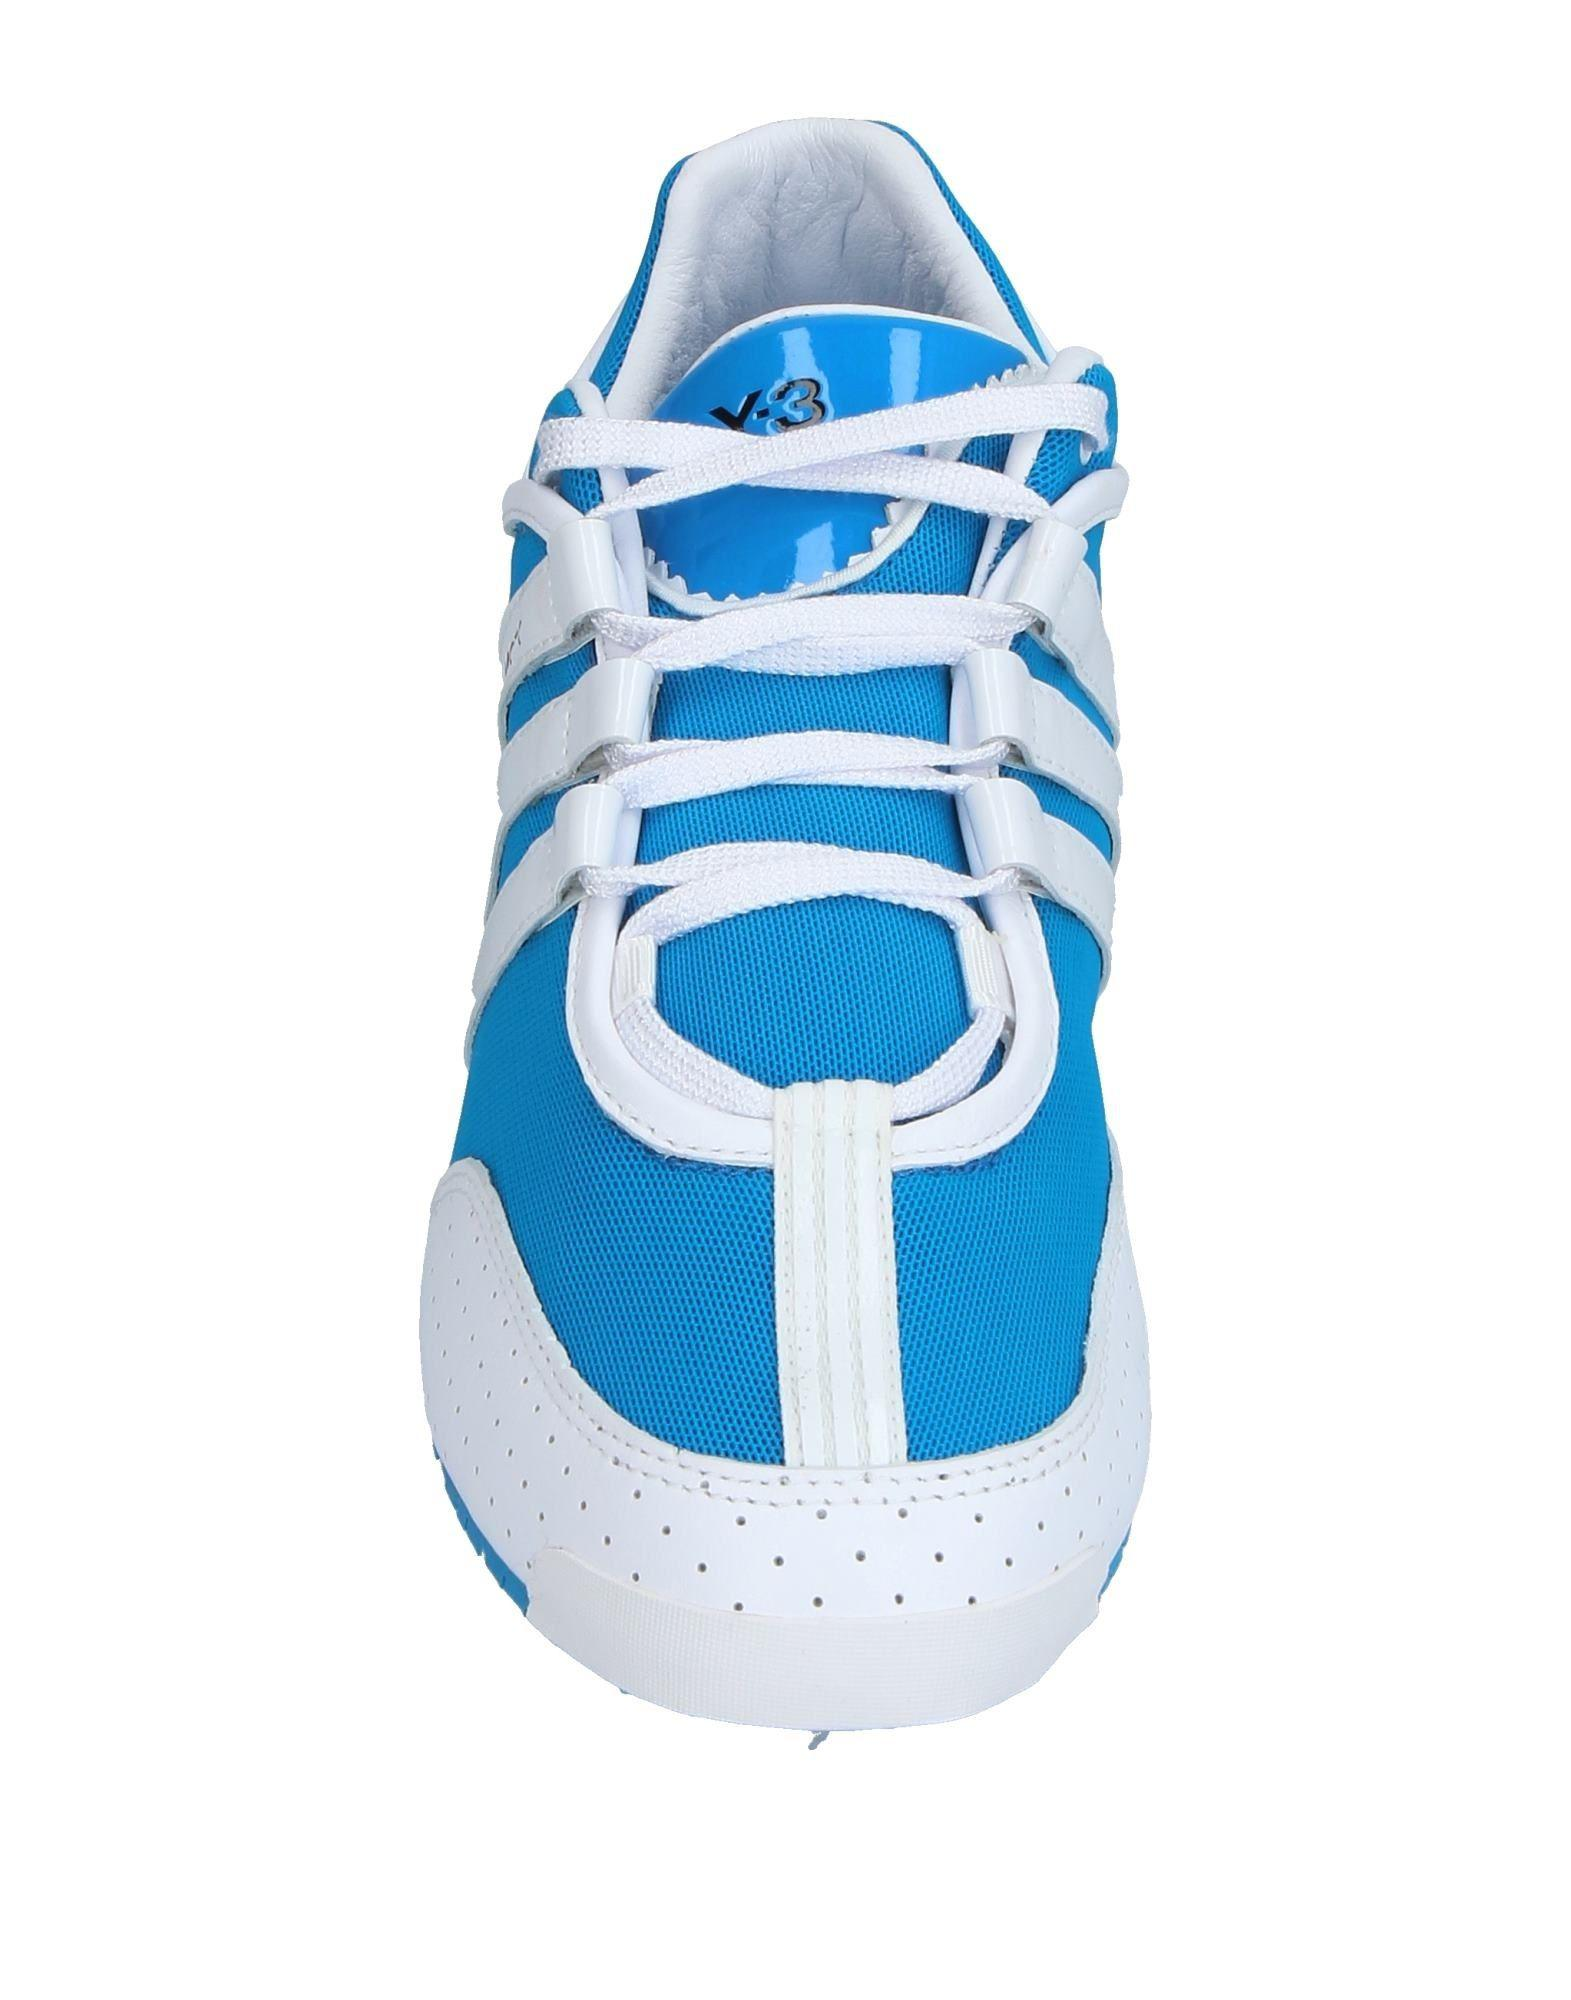 Y-3 Leather Low-tops & Sneakers in Azure (Blue)